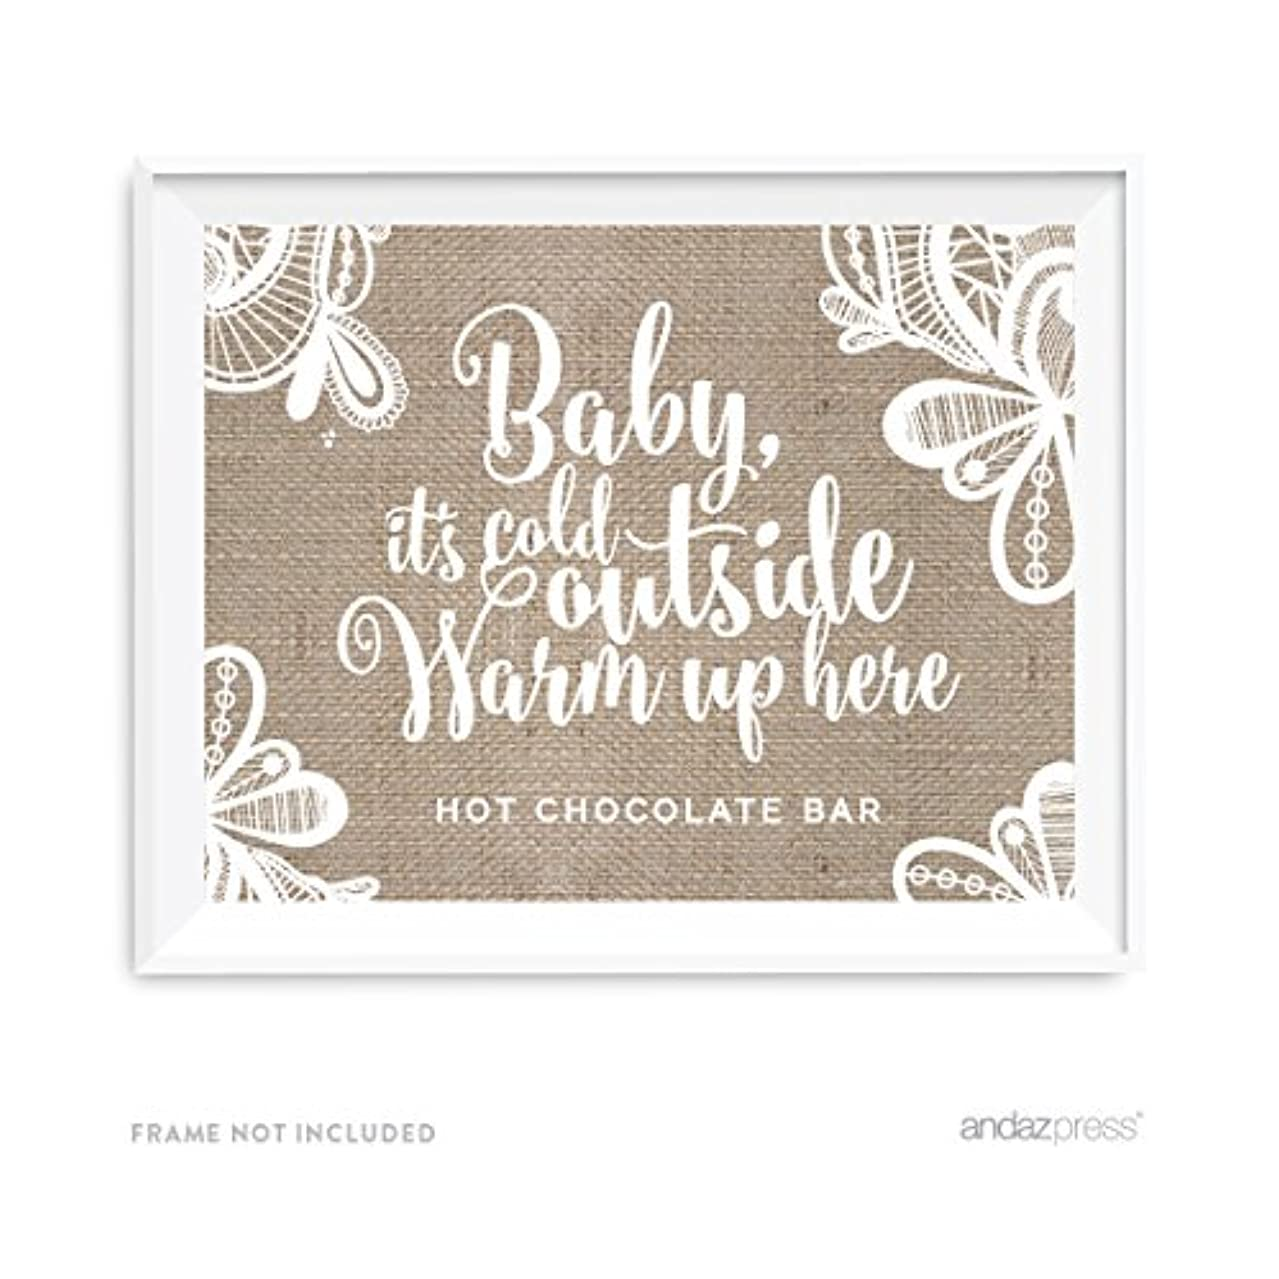 Andaz Press Burlap Lace Print Wedding Collection, Party Signs, Baby It's Cold Outside, Warm Up Here, Hot Chocolate Bar Dessert Tale Sign, 8.5x11-inch, 1-Pack